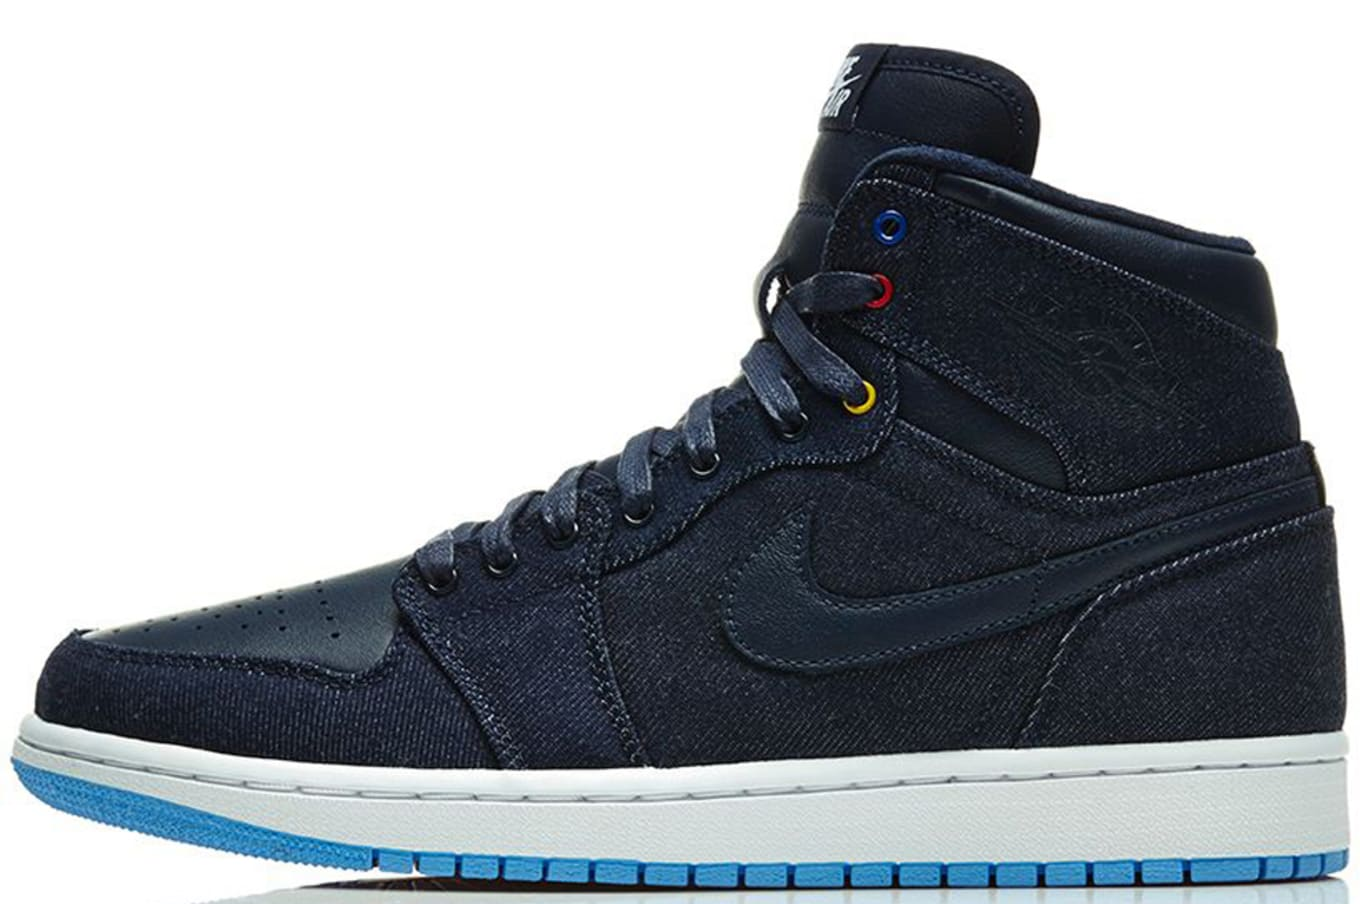 huge selection of fe162 77096 Air Jordan 1 Retro High OG Obsidian White Dark Powder Blue Game Royal